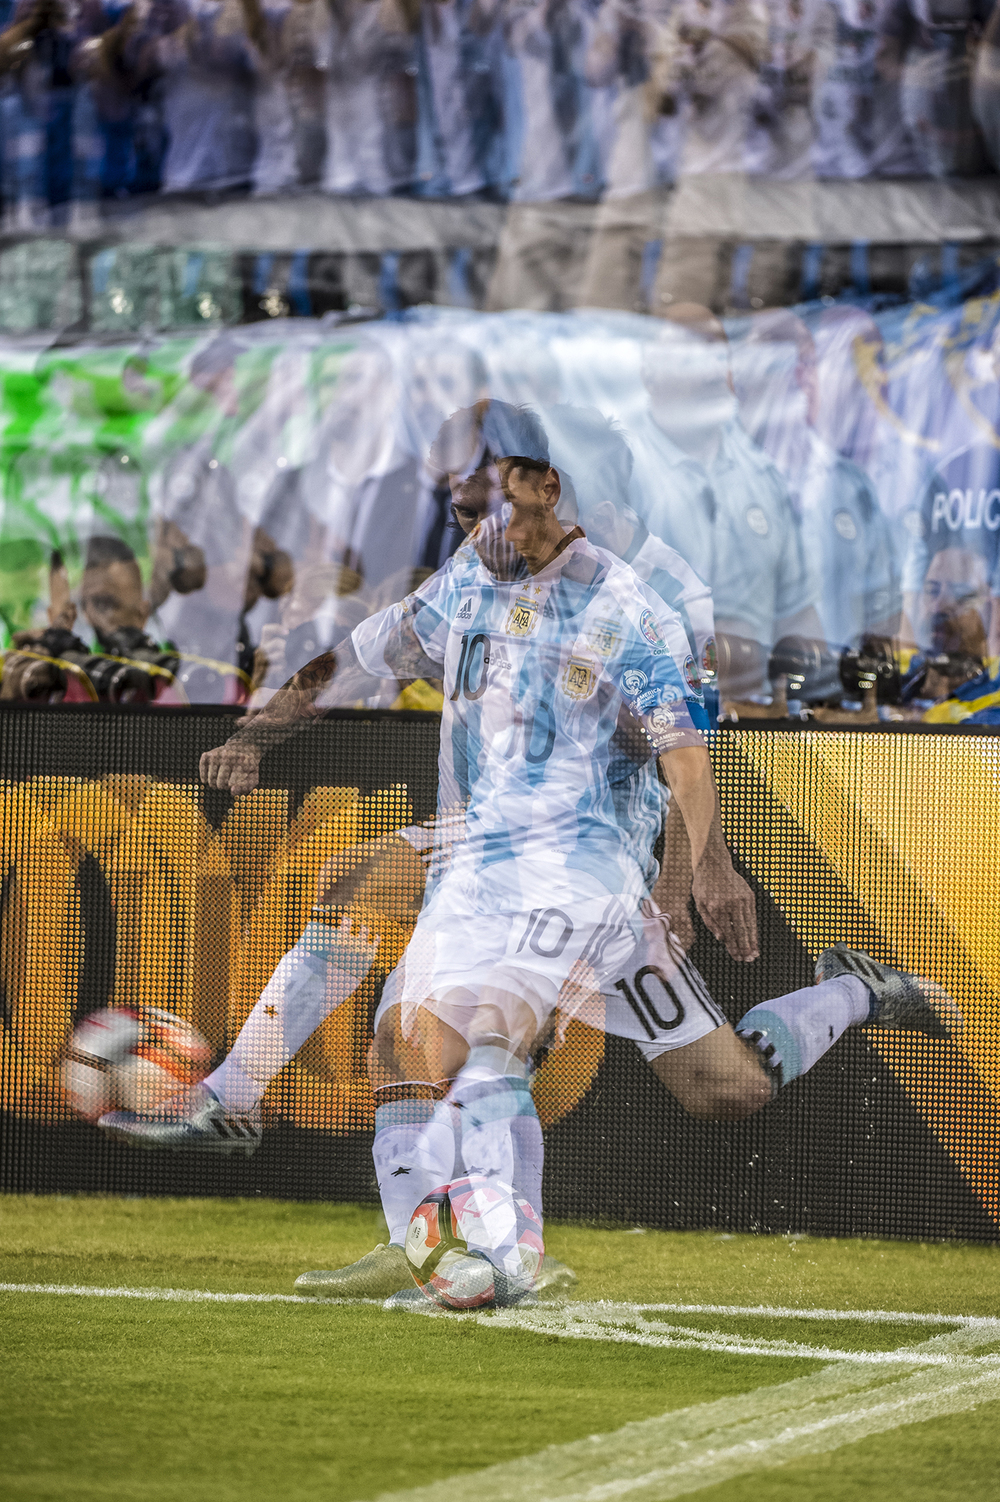 In camera Multiple exposure of Leo Messi during a corner kick.  Nikon D4s 200-400mm f4.  Lean against the video board to hold a still as possible.